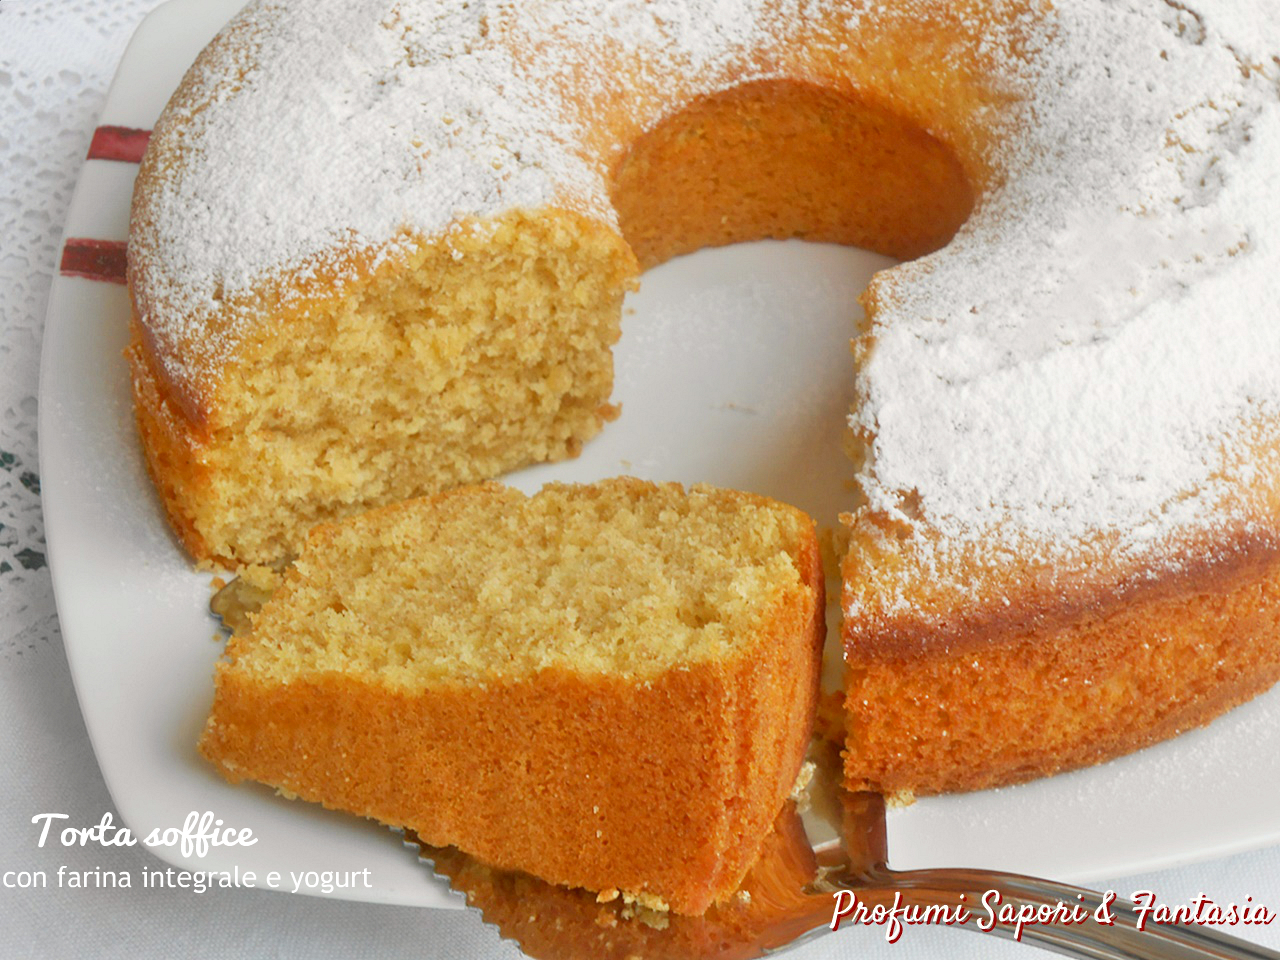 Torta soffice con farina integrale e yogurt